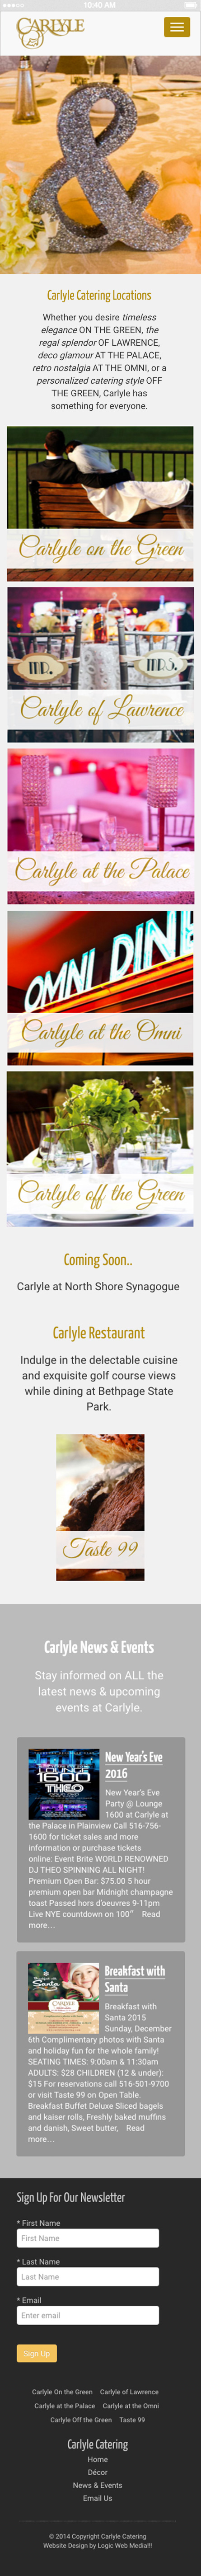 //www.logicwebmedia.com/wp-content/uploads/carlyle-long-island-mobile-design-long.jpg